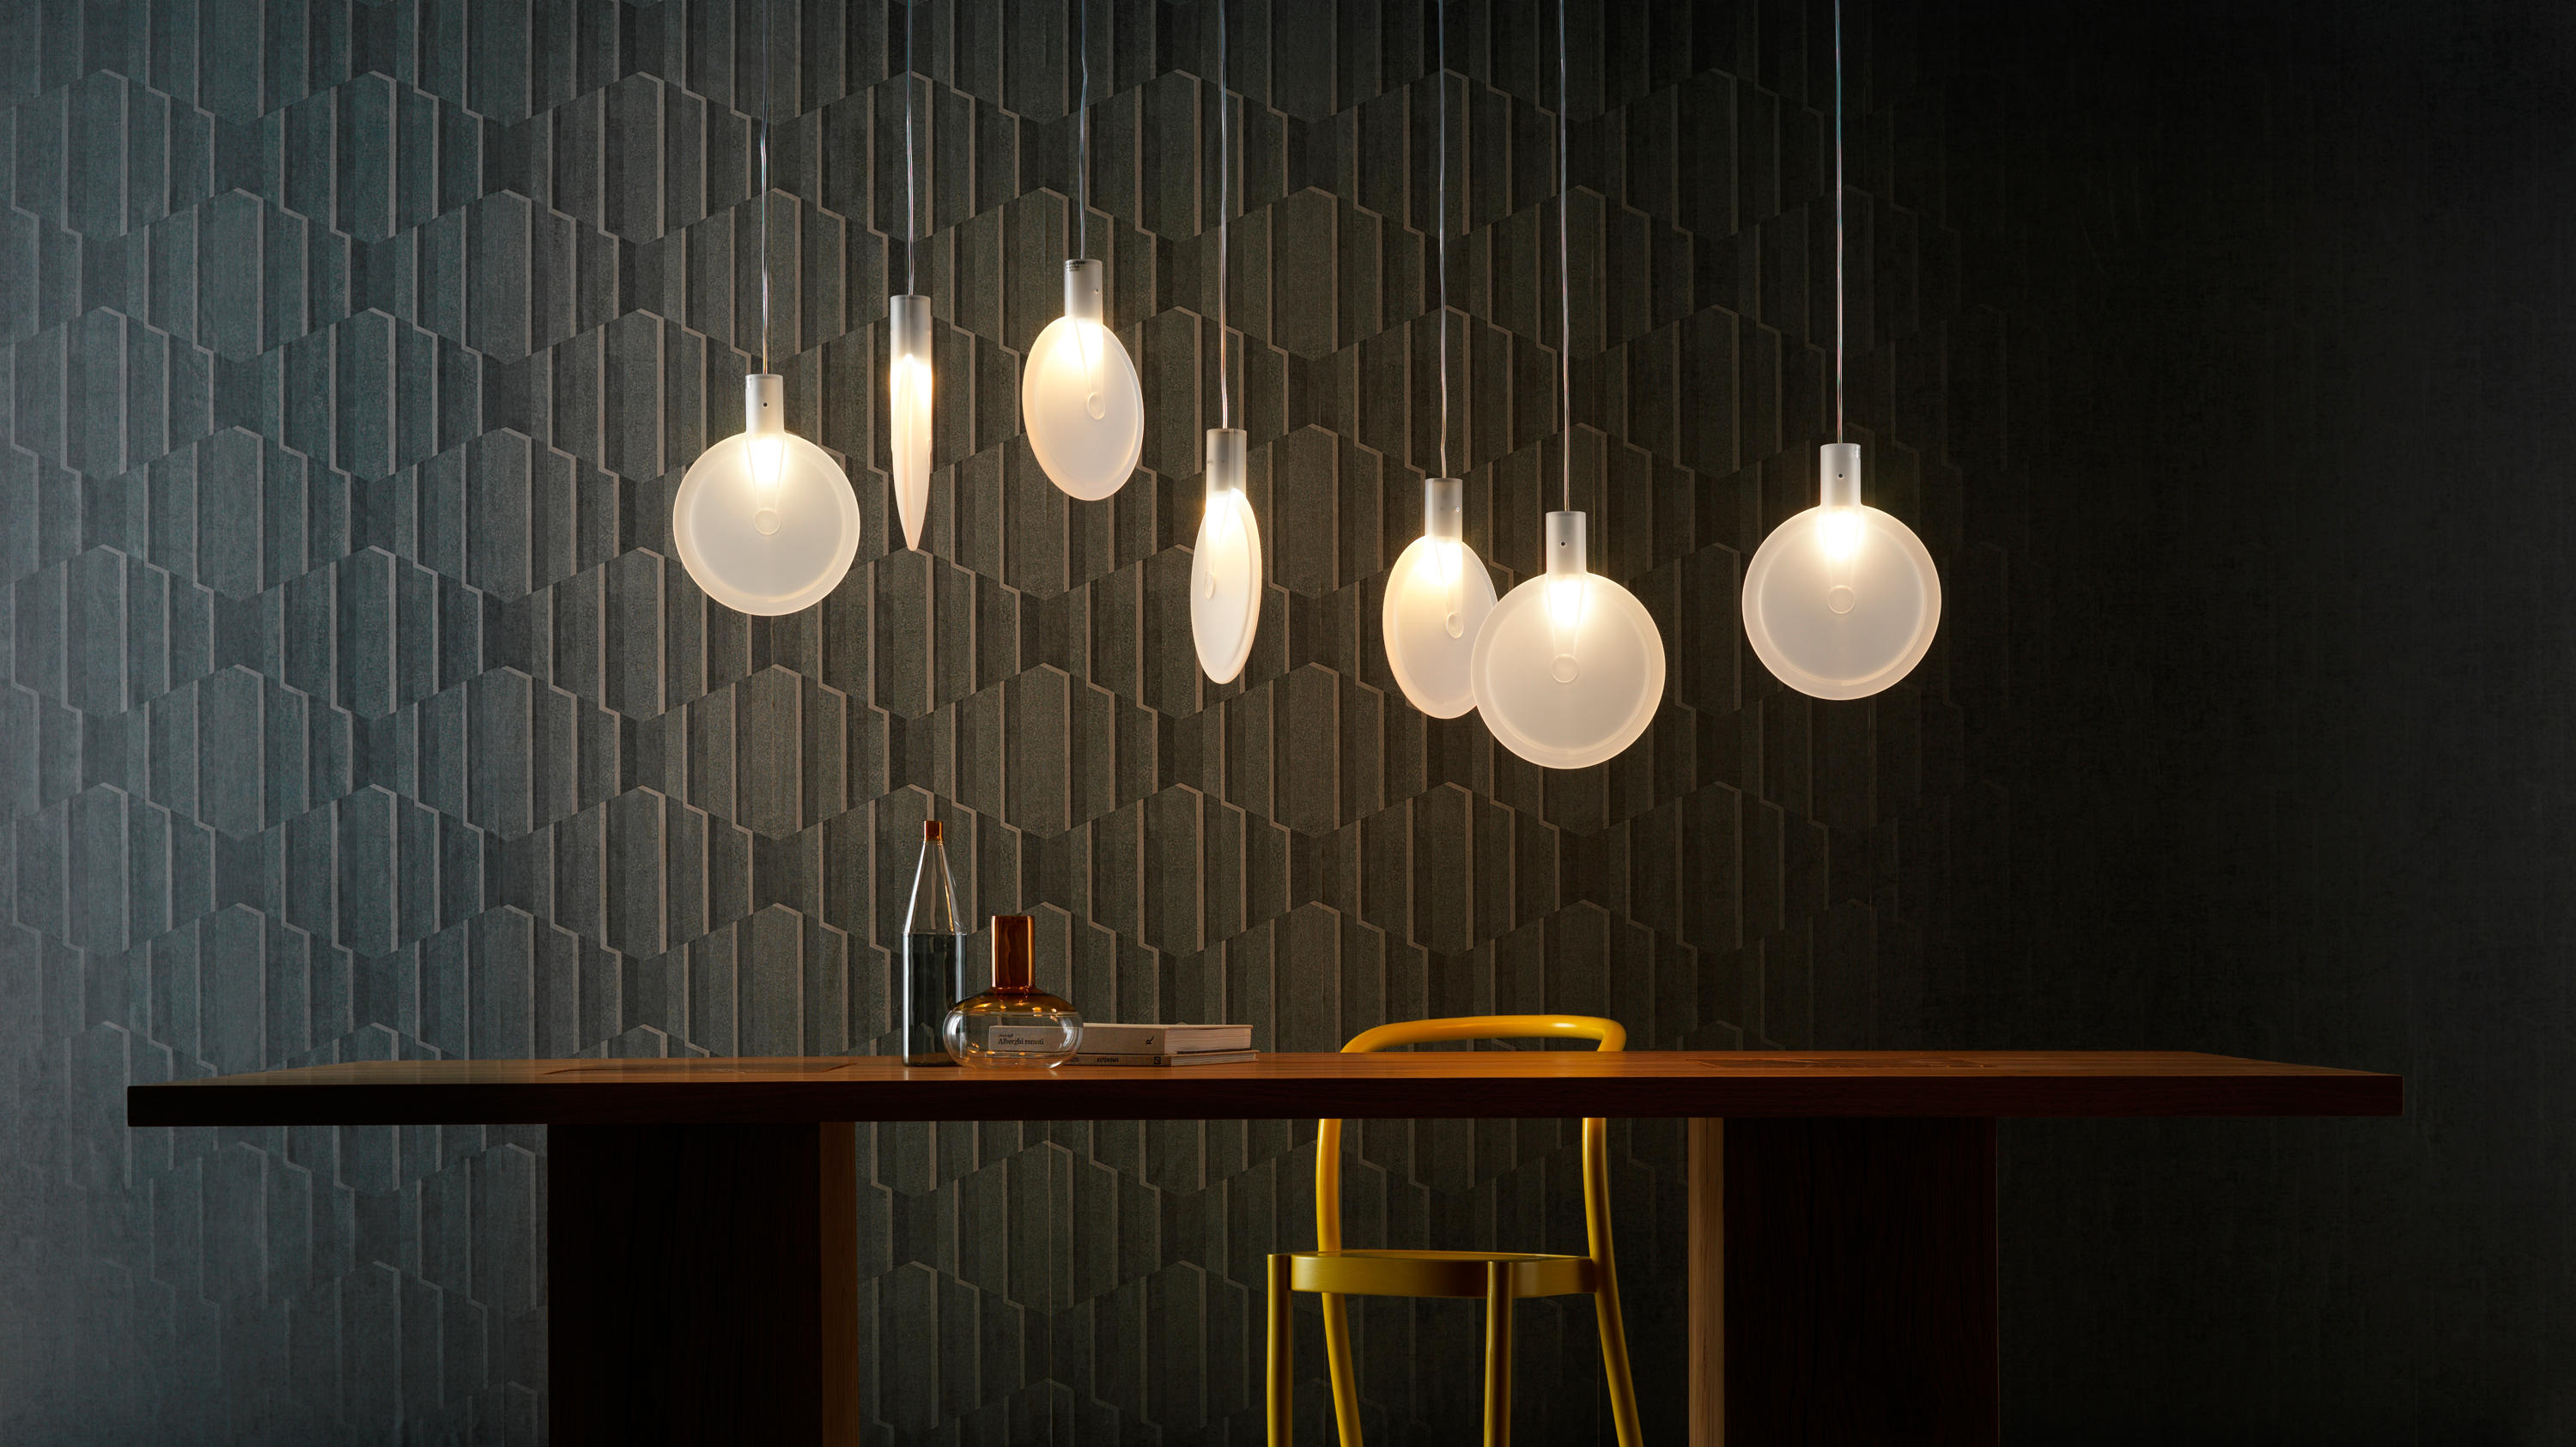 NEBRA SUSPENSION LAMP - General lighting from FontanaArte | Architonic